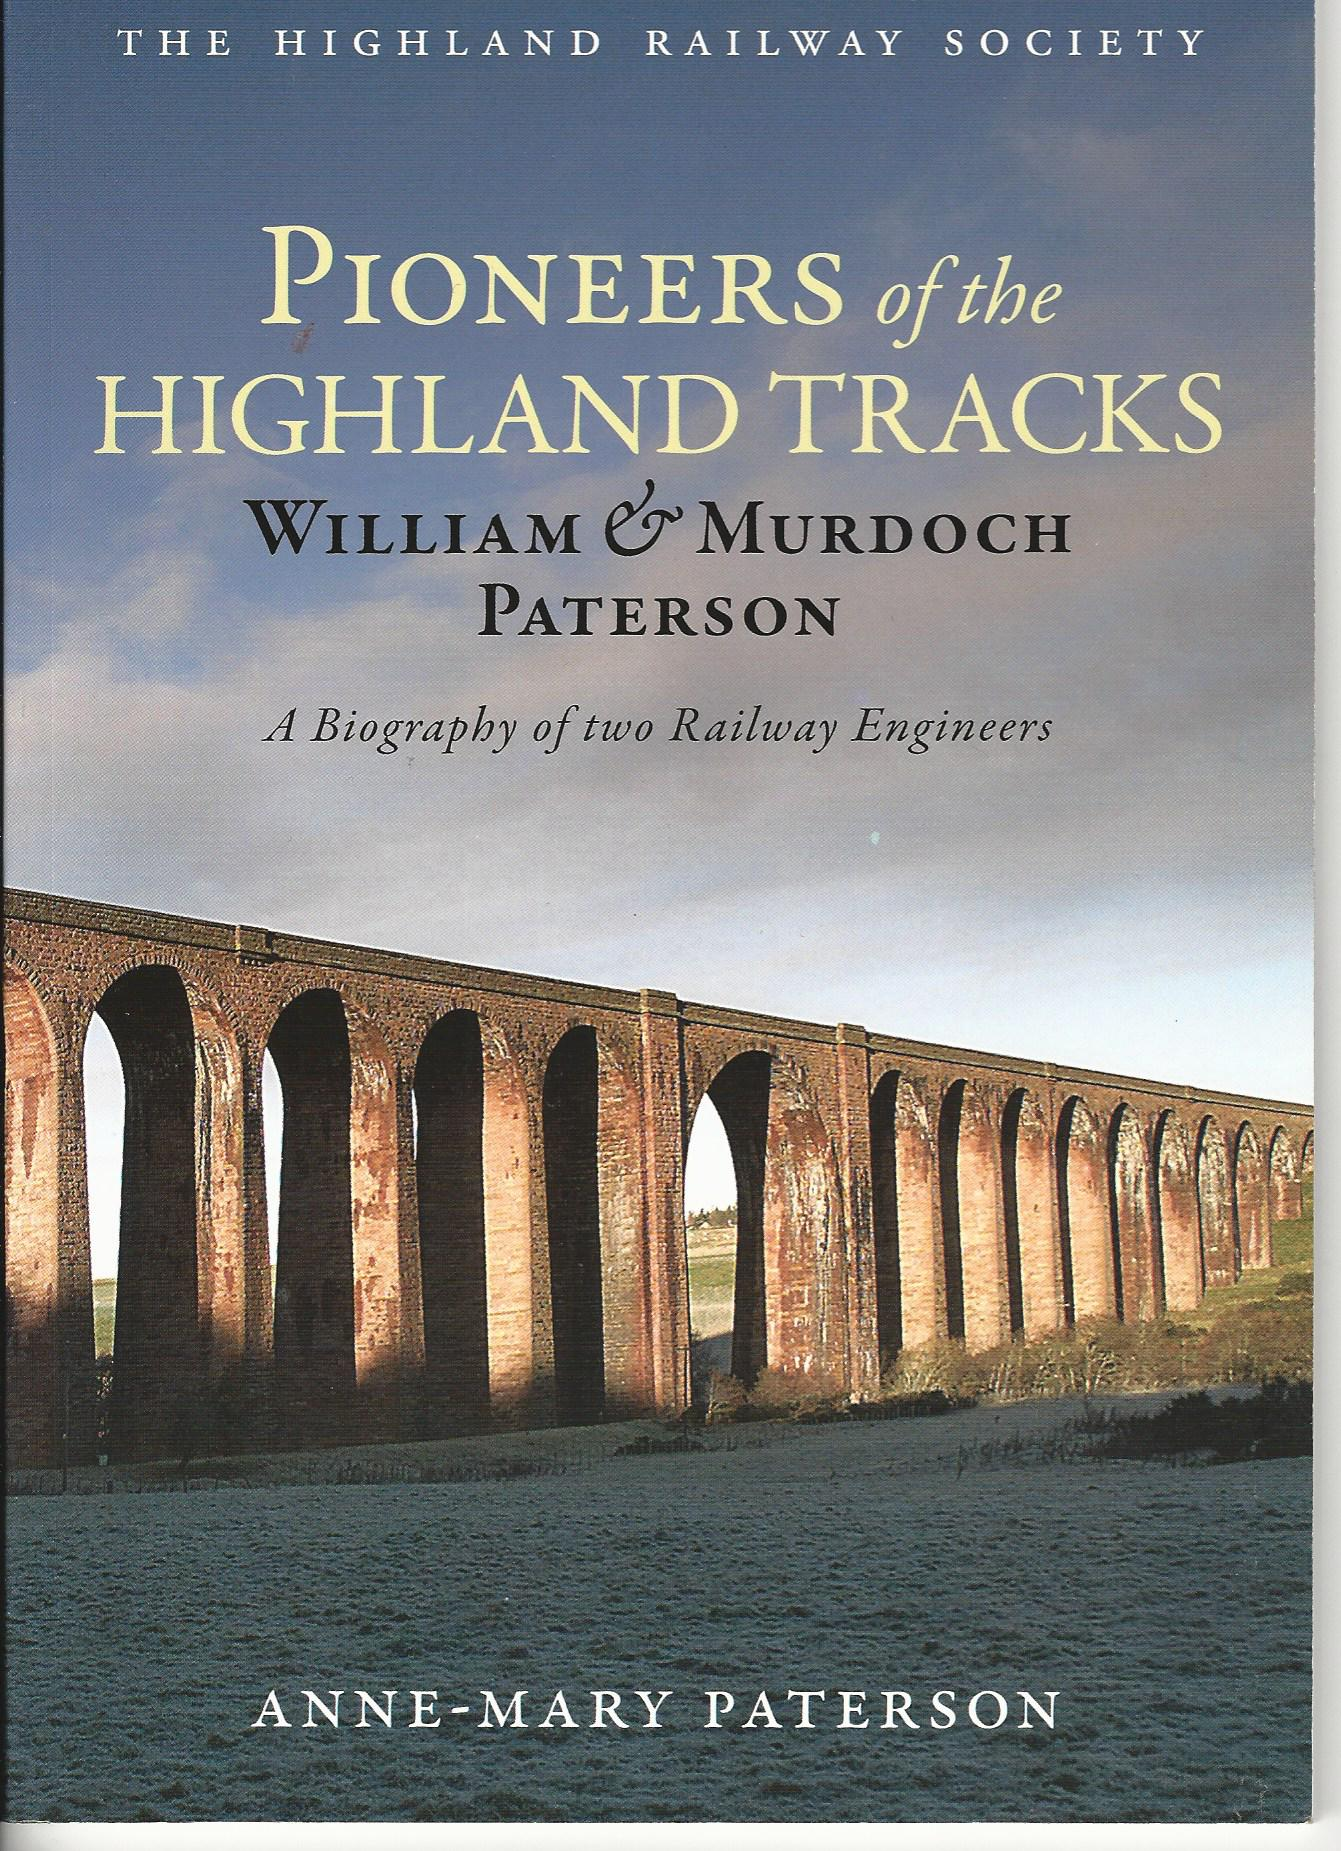 Image for Pioneers of the Highland Tracks: William and Murdoch Paterson, A Biography of Two Railway Engineers.